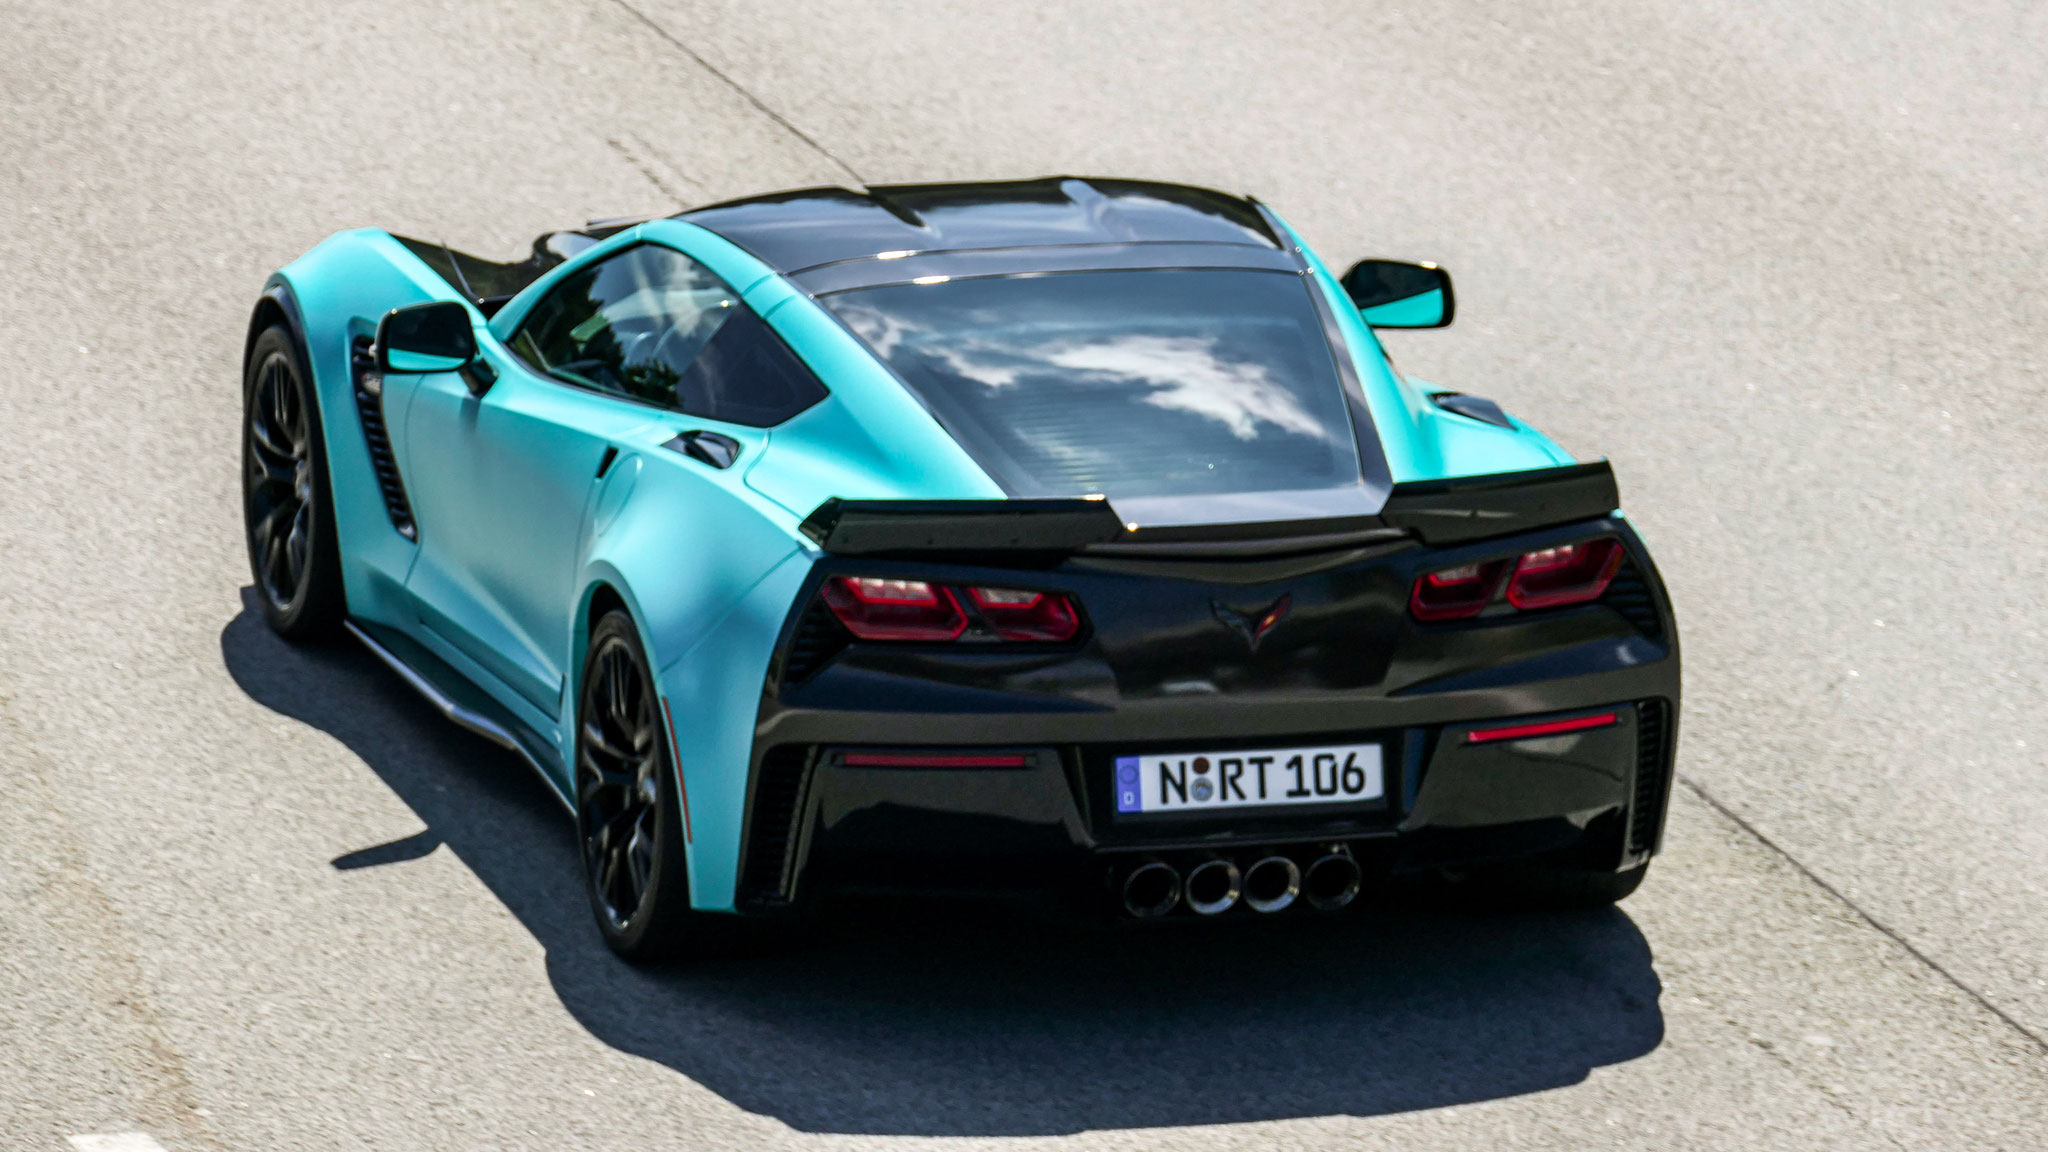 Chevrolet Corvette C7 Z06 - N-RT-106